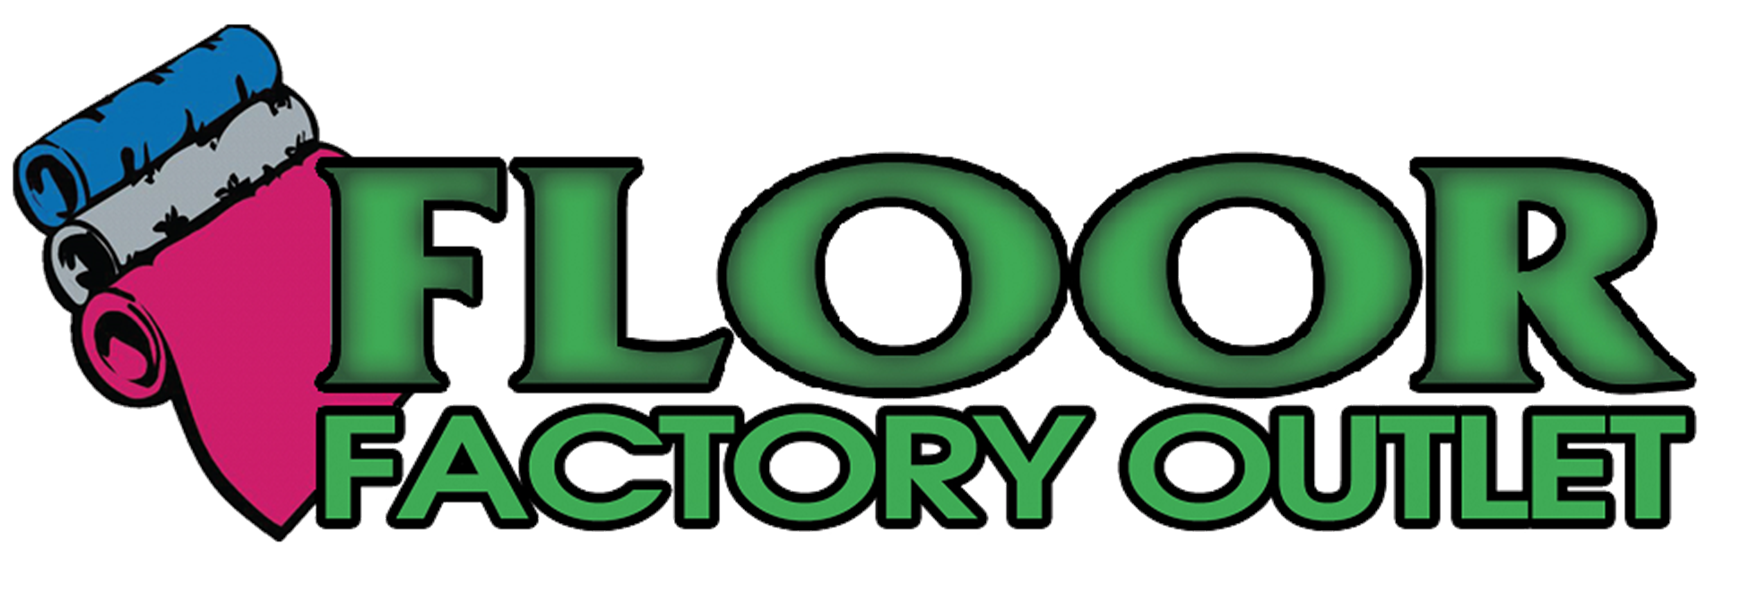 Floor Factory Outlet - 1760 Tree Blvd, St. Augustine, FL 32084